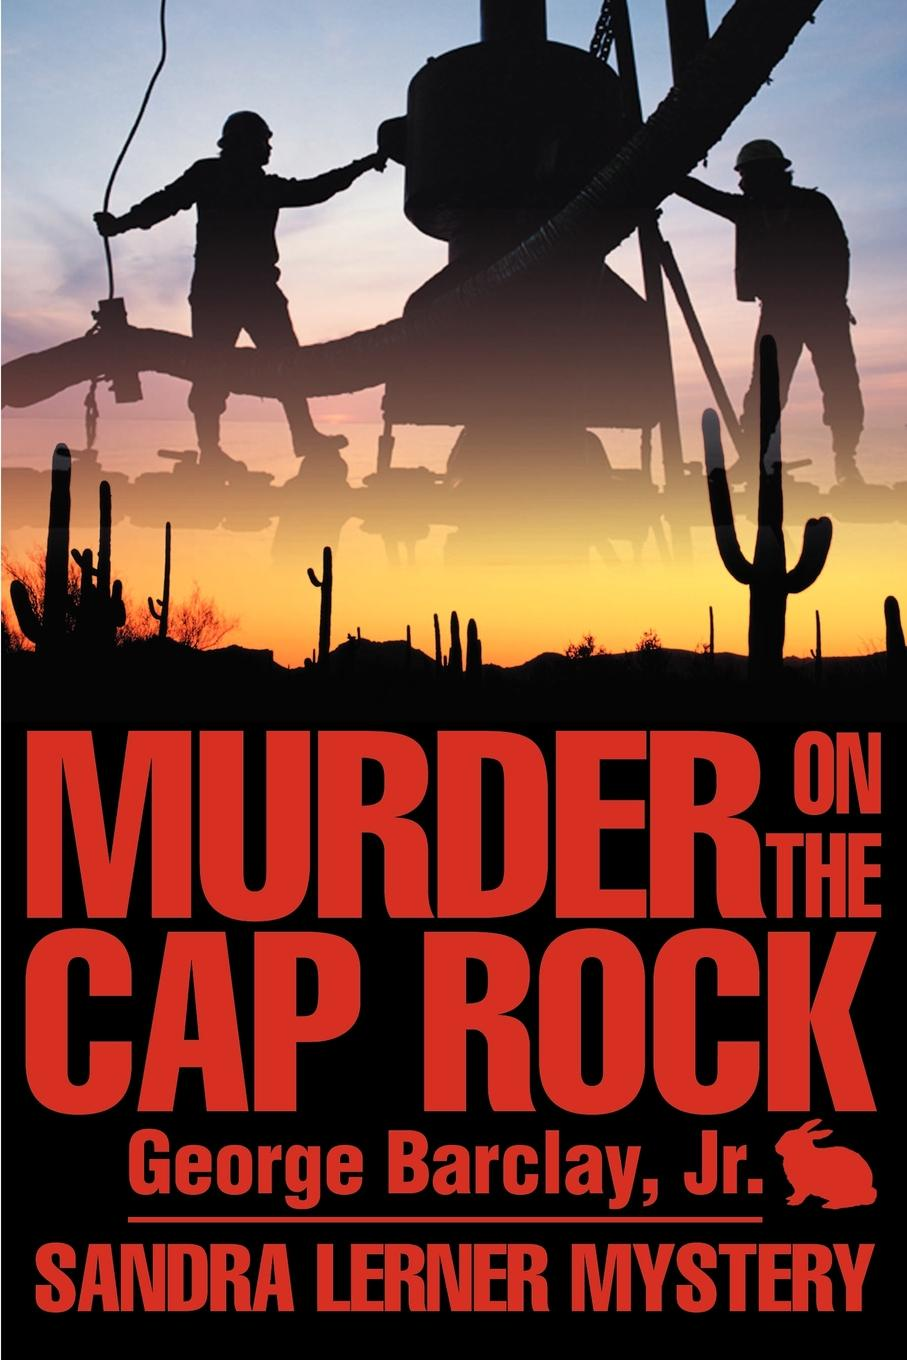 George W. Barclay Murder on the Cap Rock murder calls on the temple mount